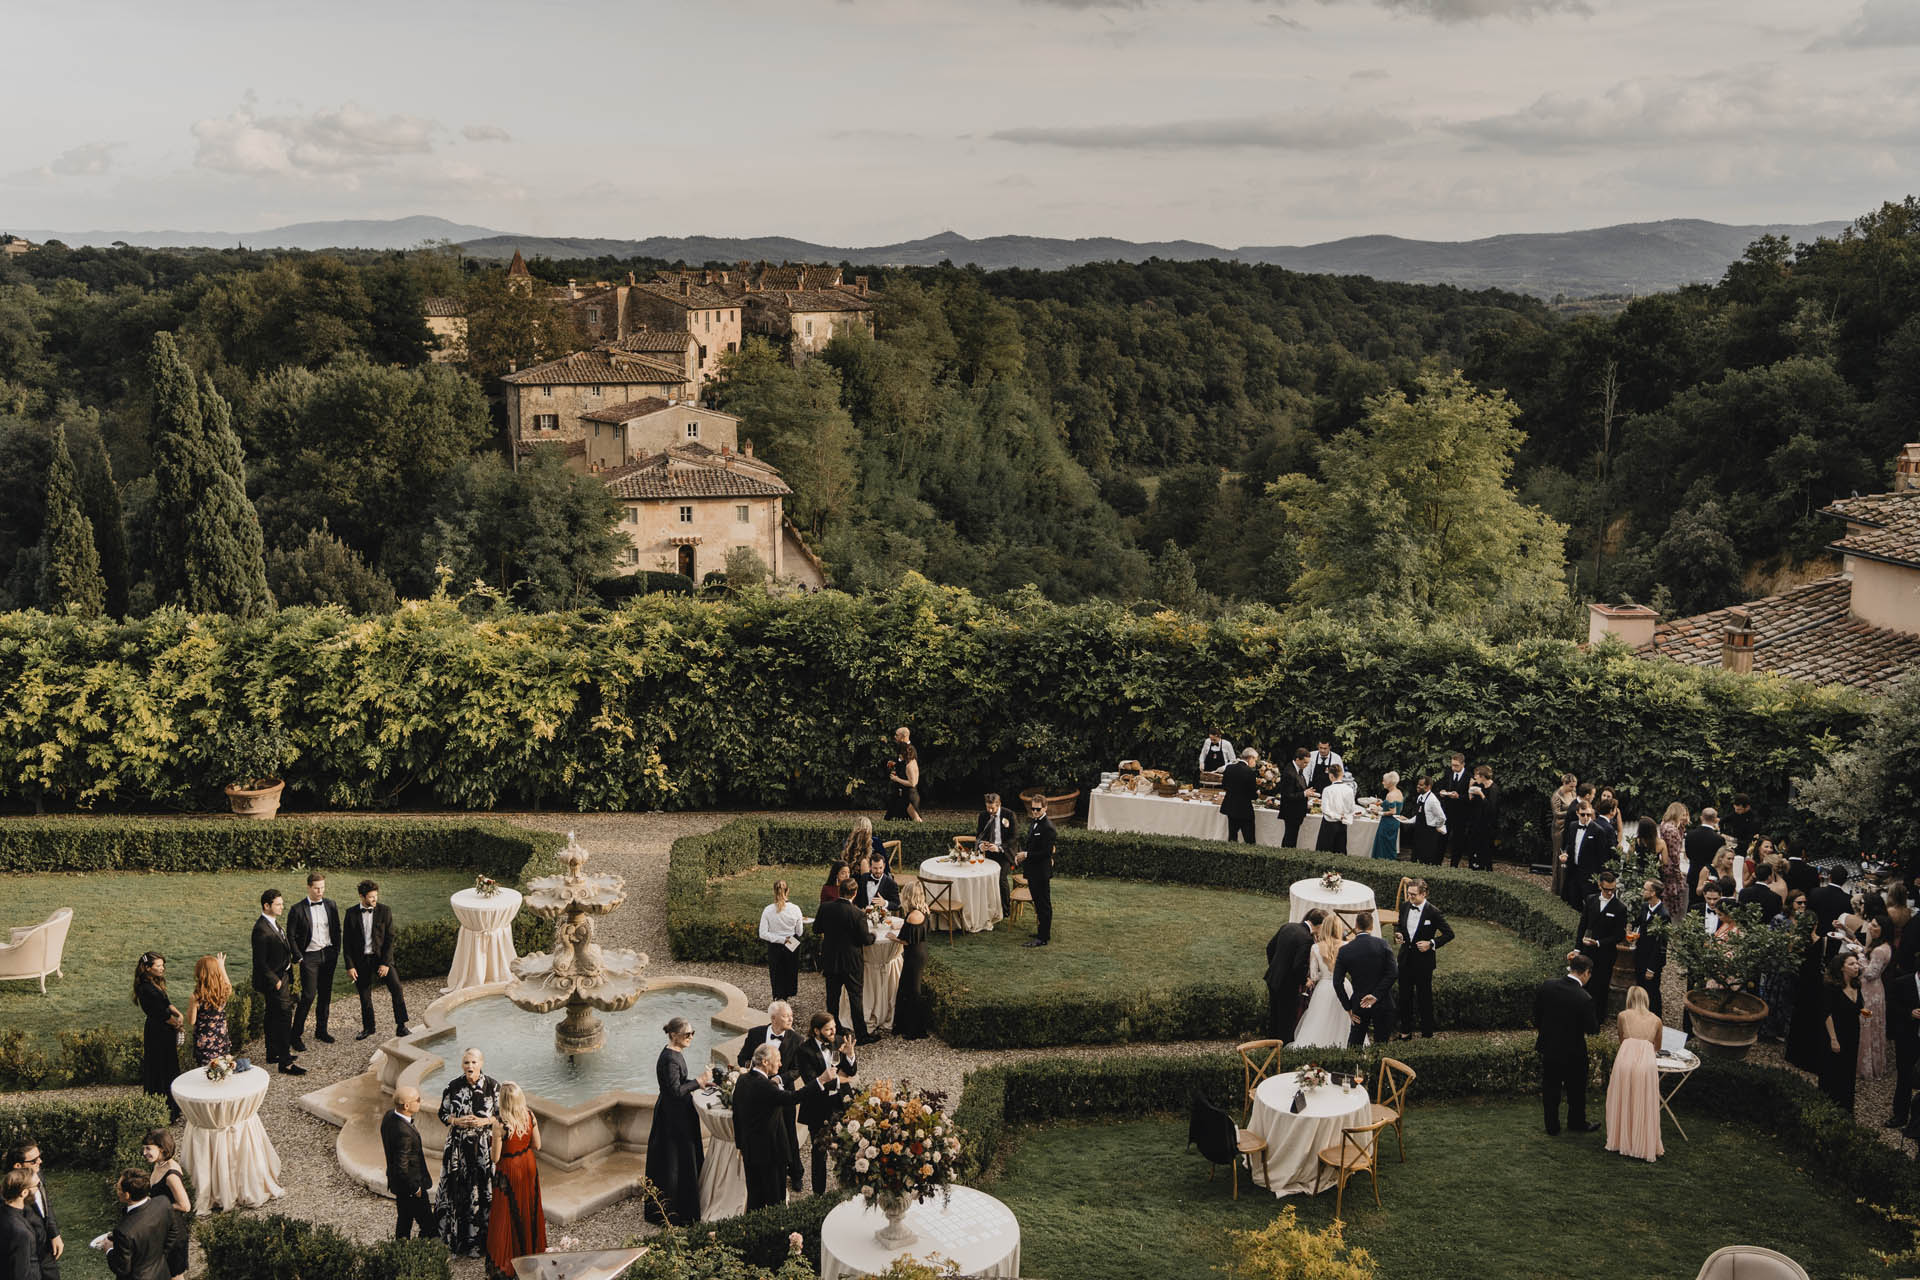 - 57 :: Intimate elegance: an intimate wedding at Il Borro :: Luxury wedding photography - 56 ::  - 57